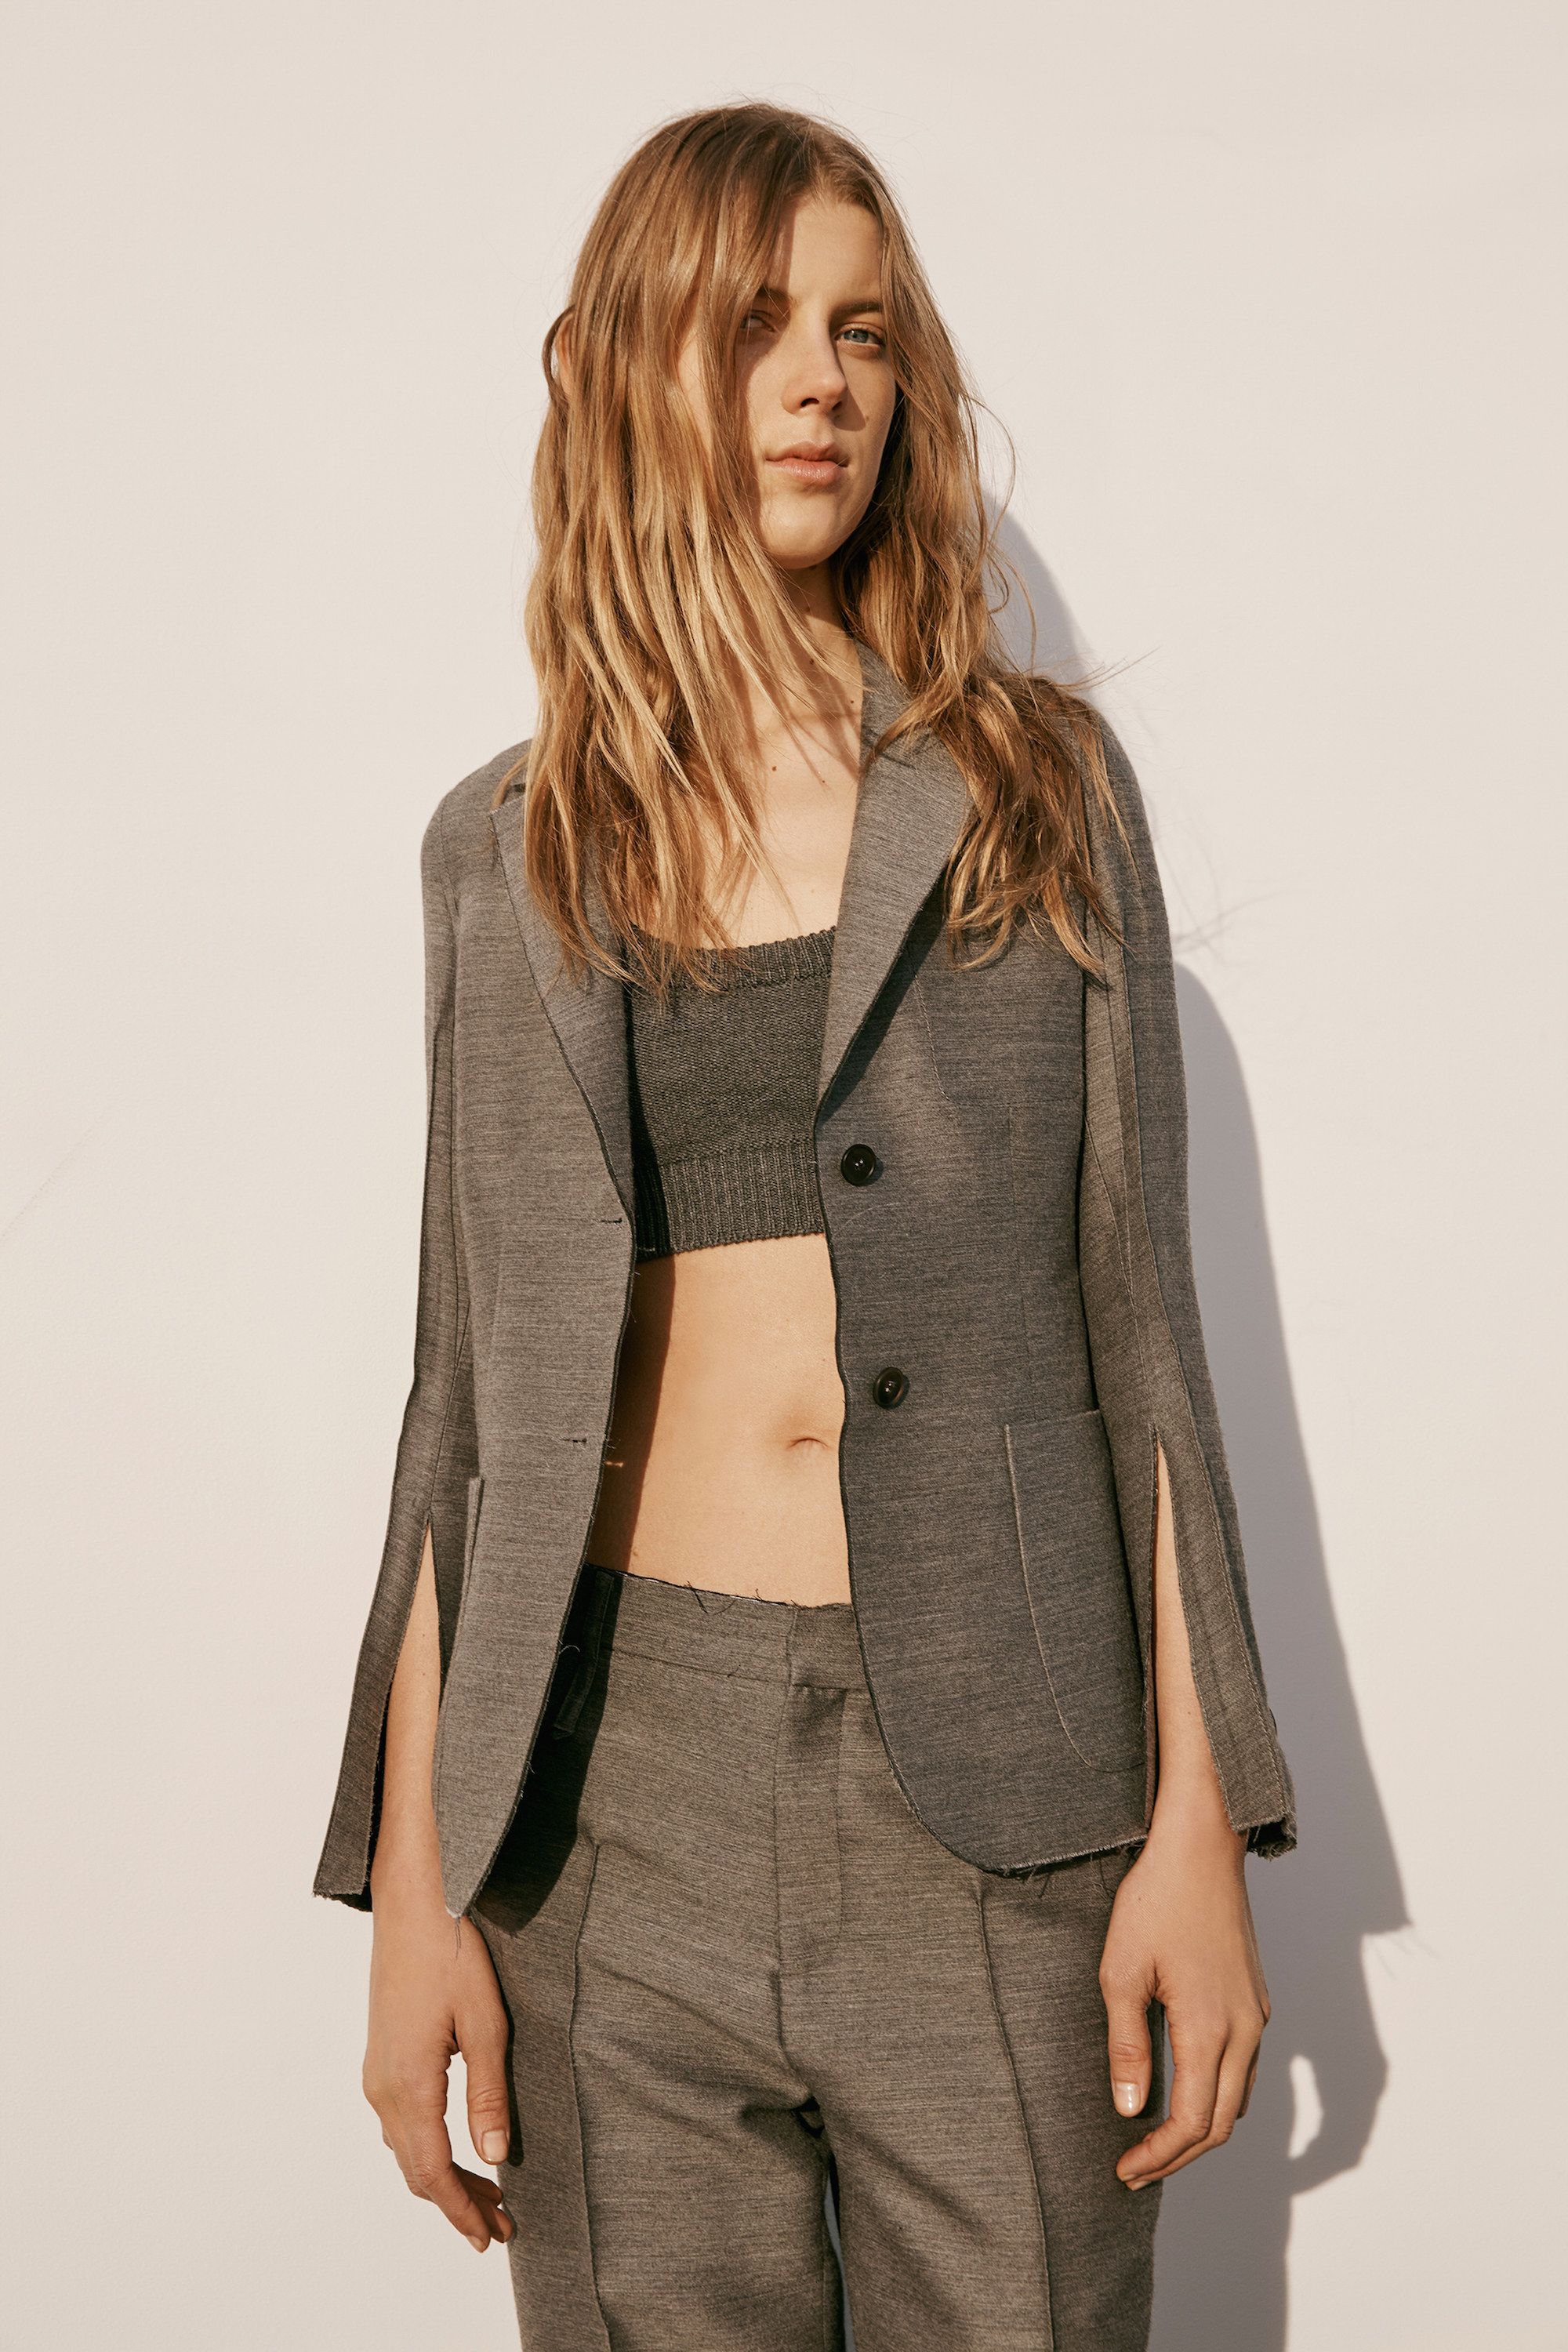 calvin-klein-collection-pre-fall-2016-lookbook-06.jpg